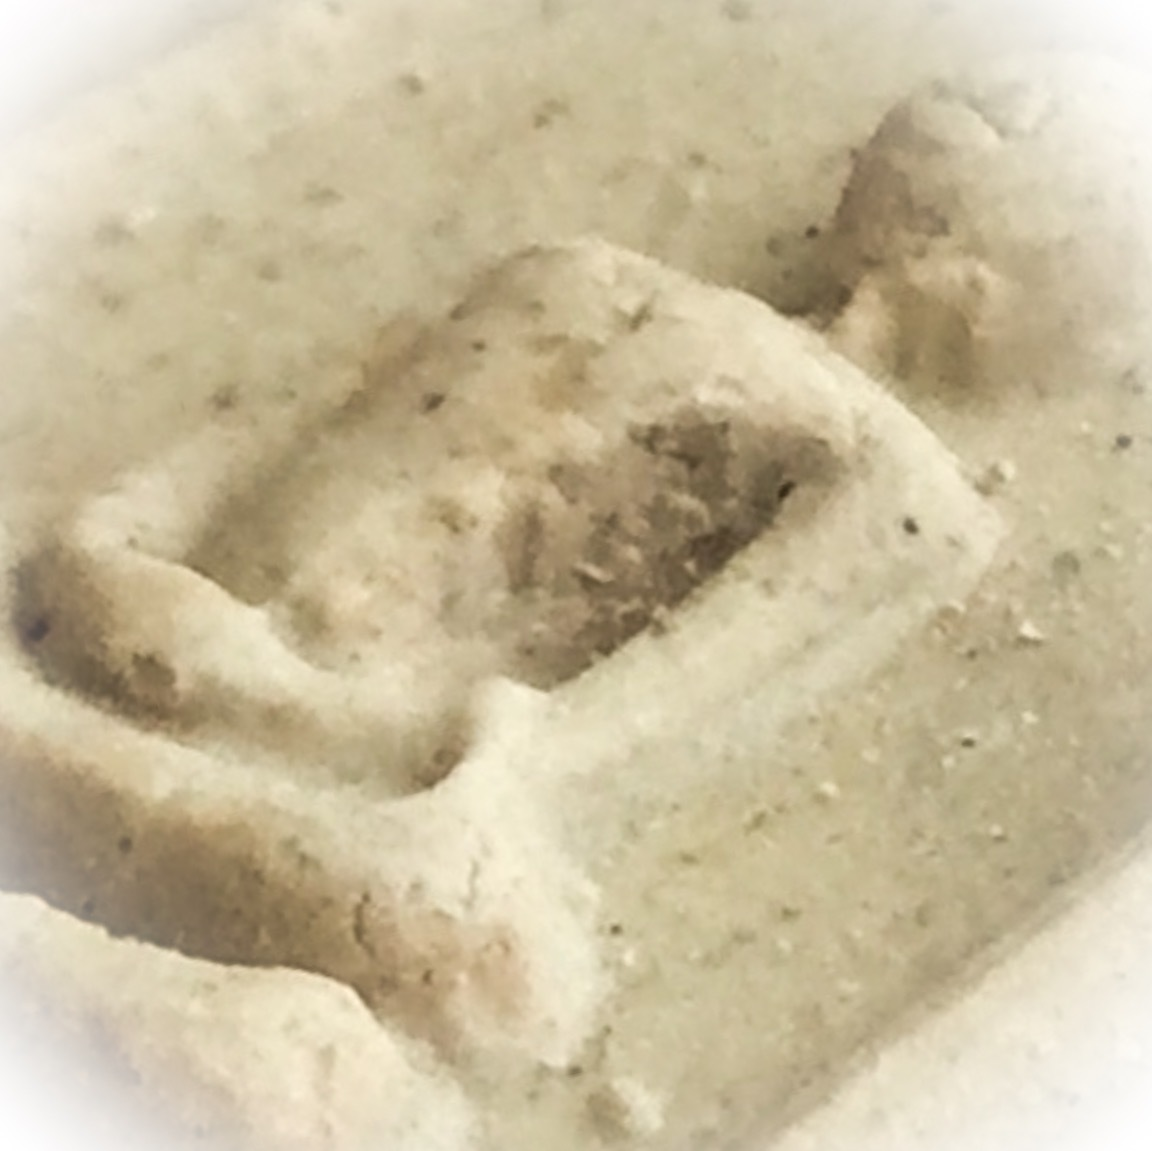 A Macro Close Up Image of the Muan Sarn Powders on the surface of the Pra Somdej Amulet